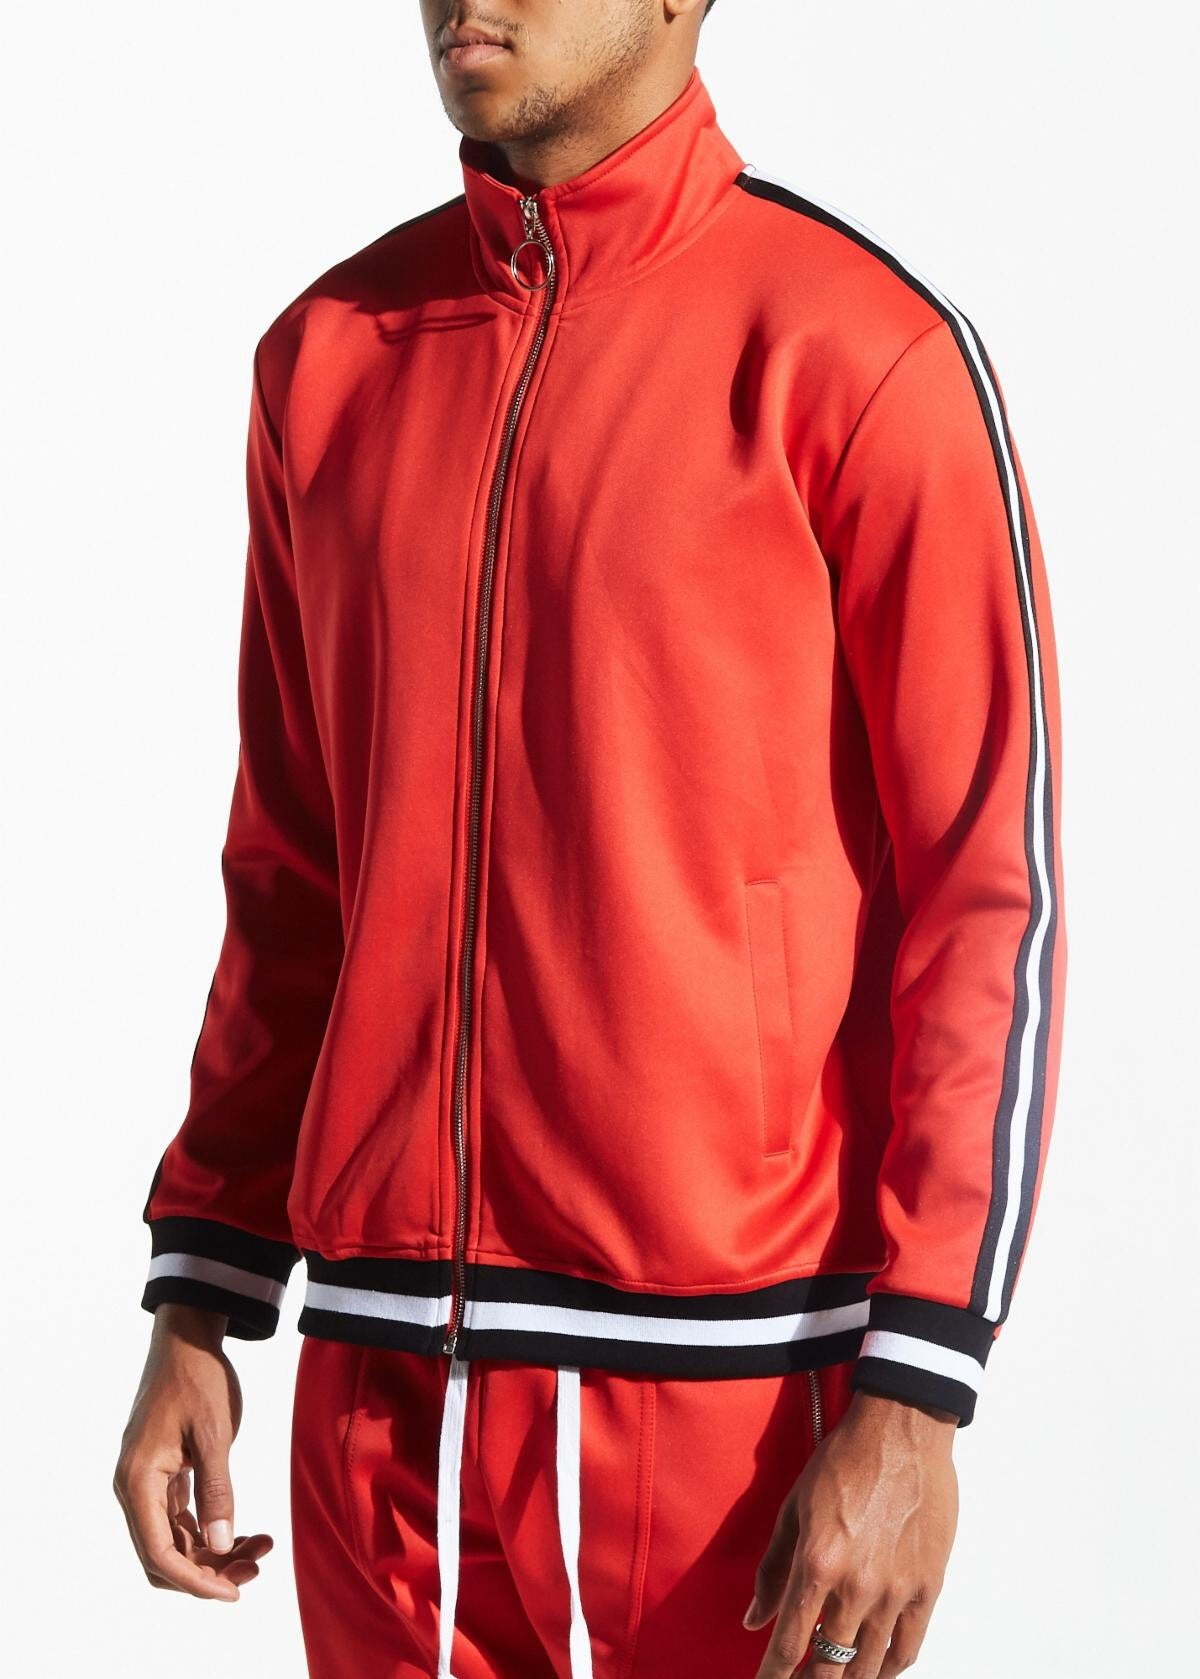 Karter Collection Track Jacket Galactus Krtrfa218-107 Red Orange